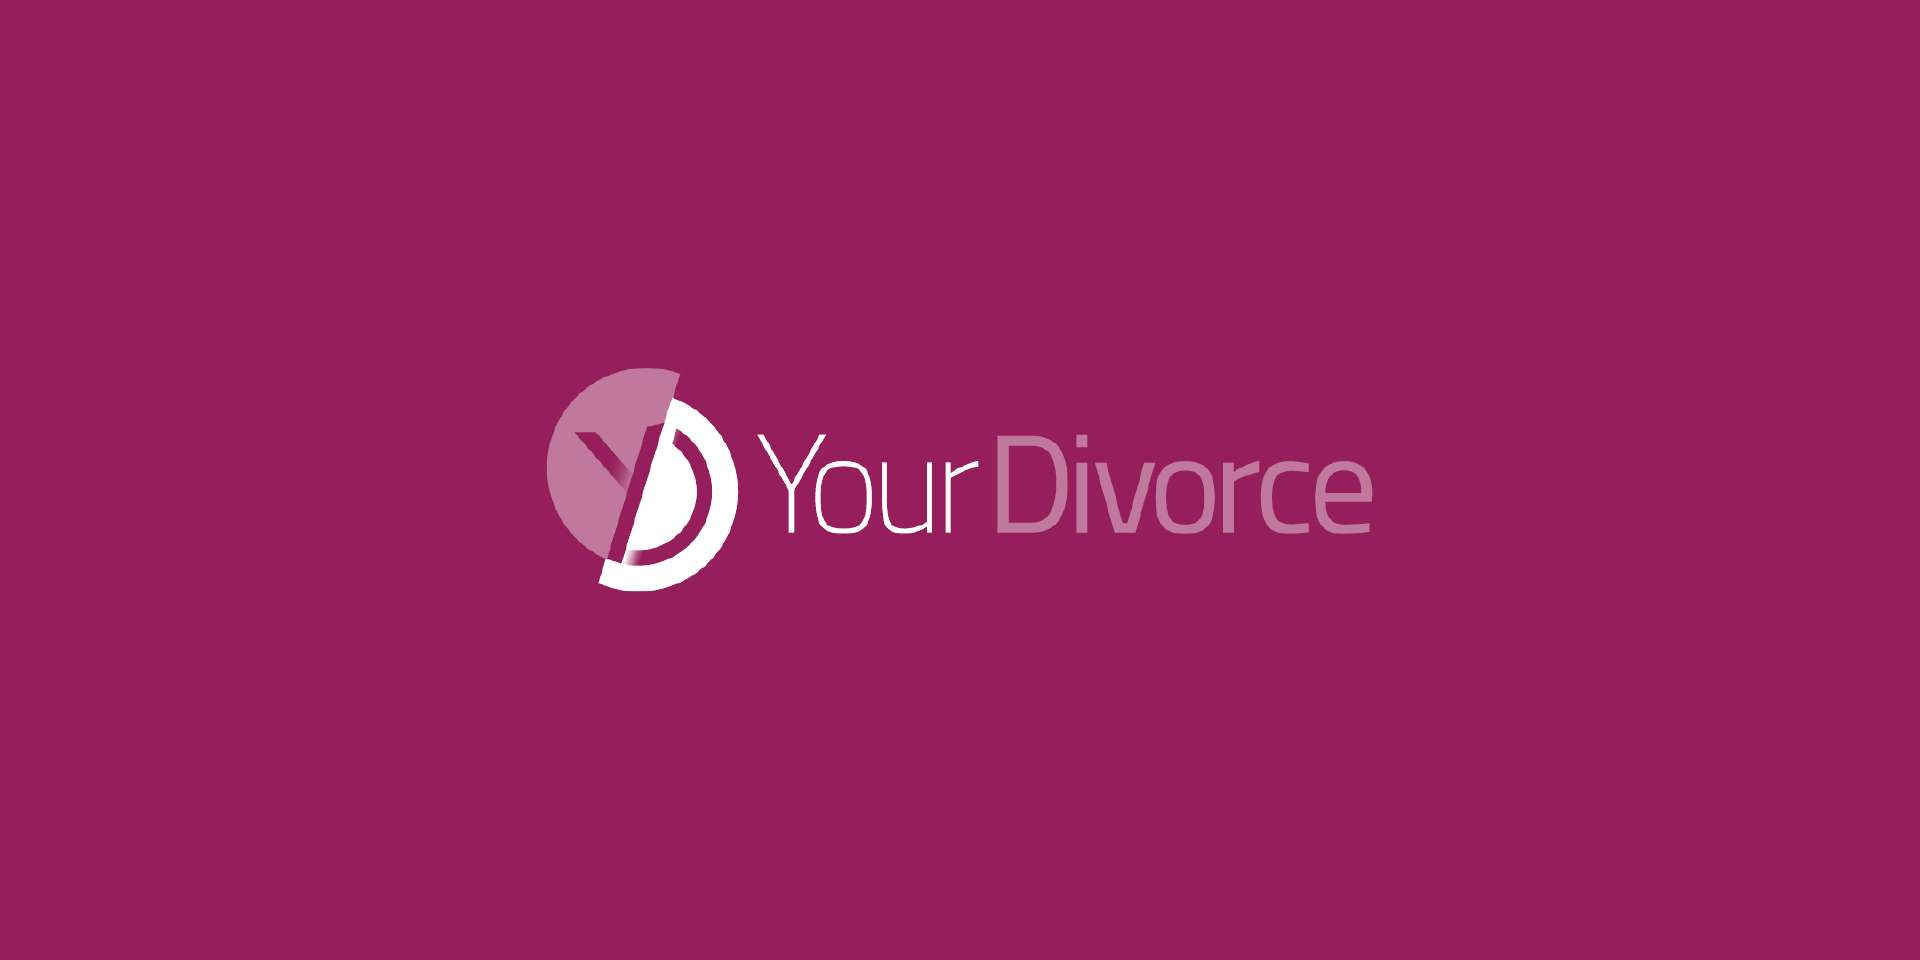 How to get a divorce qld, nsw, vic, tas, wa, sa, nt